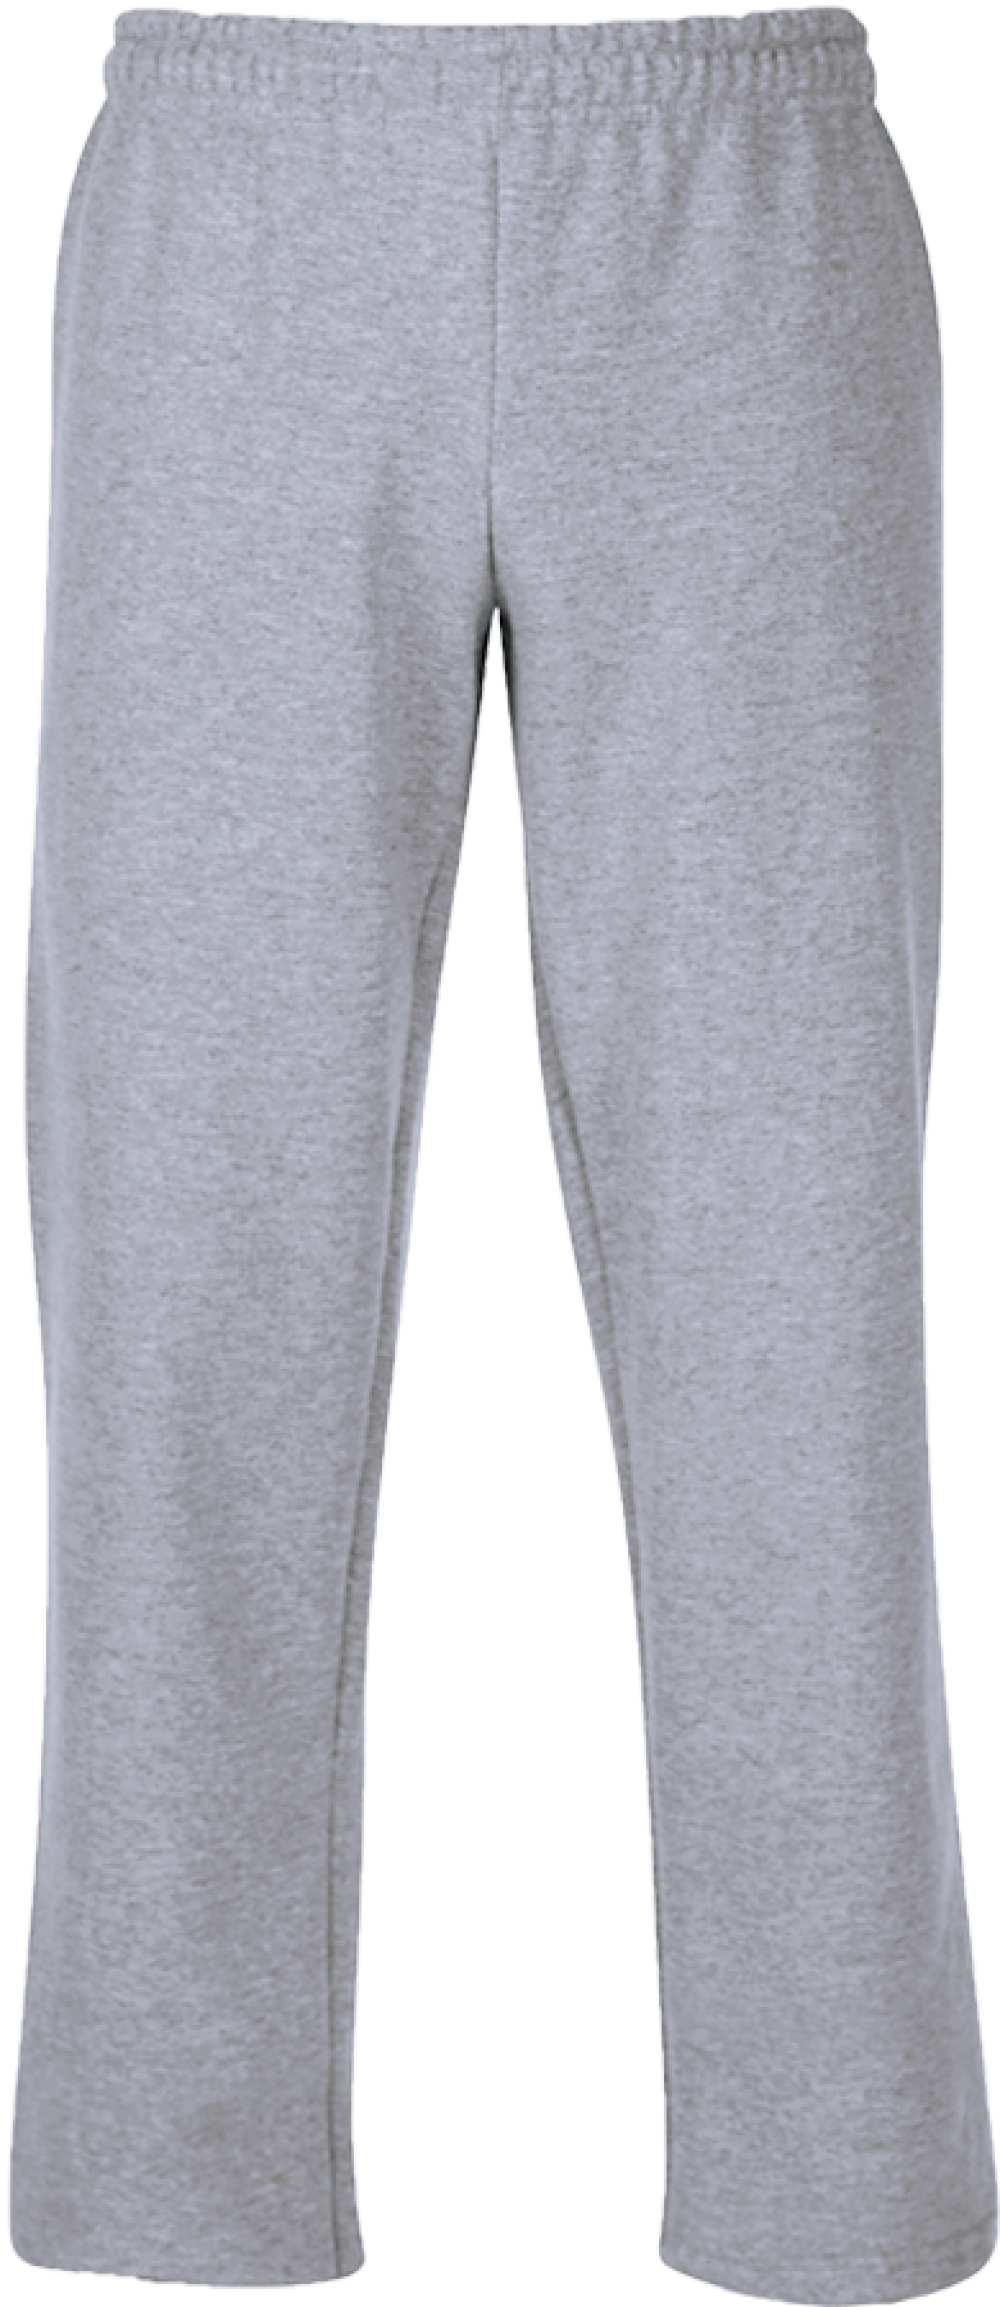 GILDAN HEAVY BLEND SWEATPANTS SWEATPANTS PANTS Supplier, Supply, Supplies, Services ~ Bit Pixel Uniforms Sdn Bhd